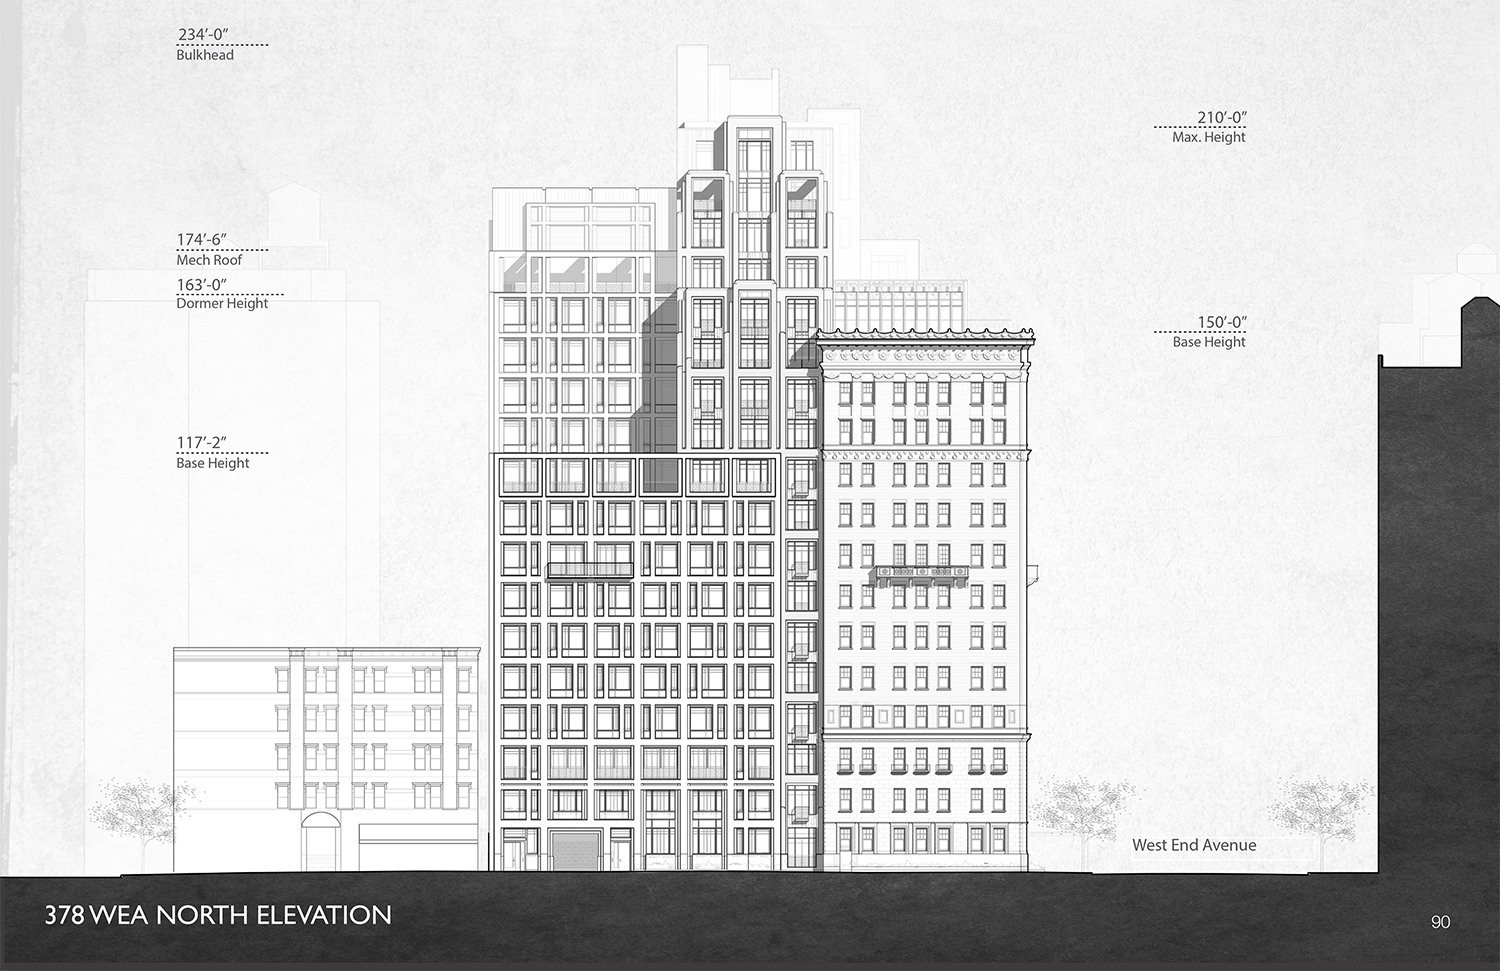 Proposed schematic of 378 West End Avenue.